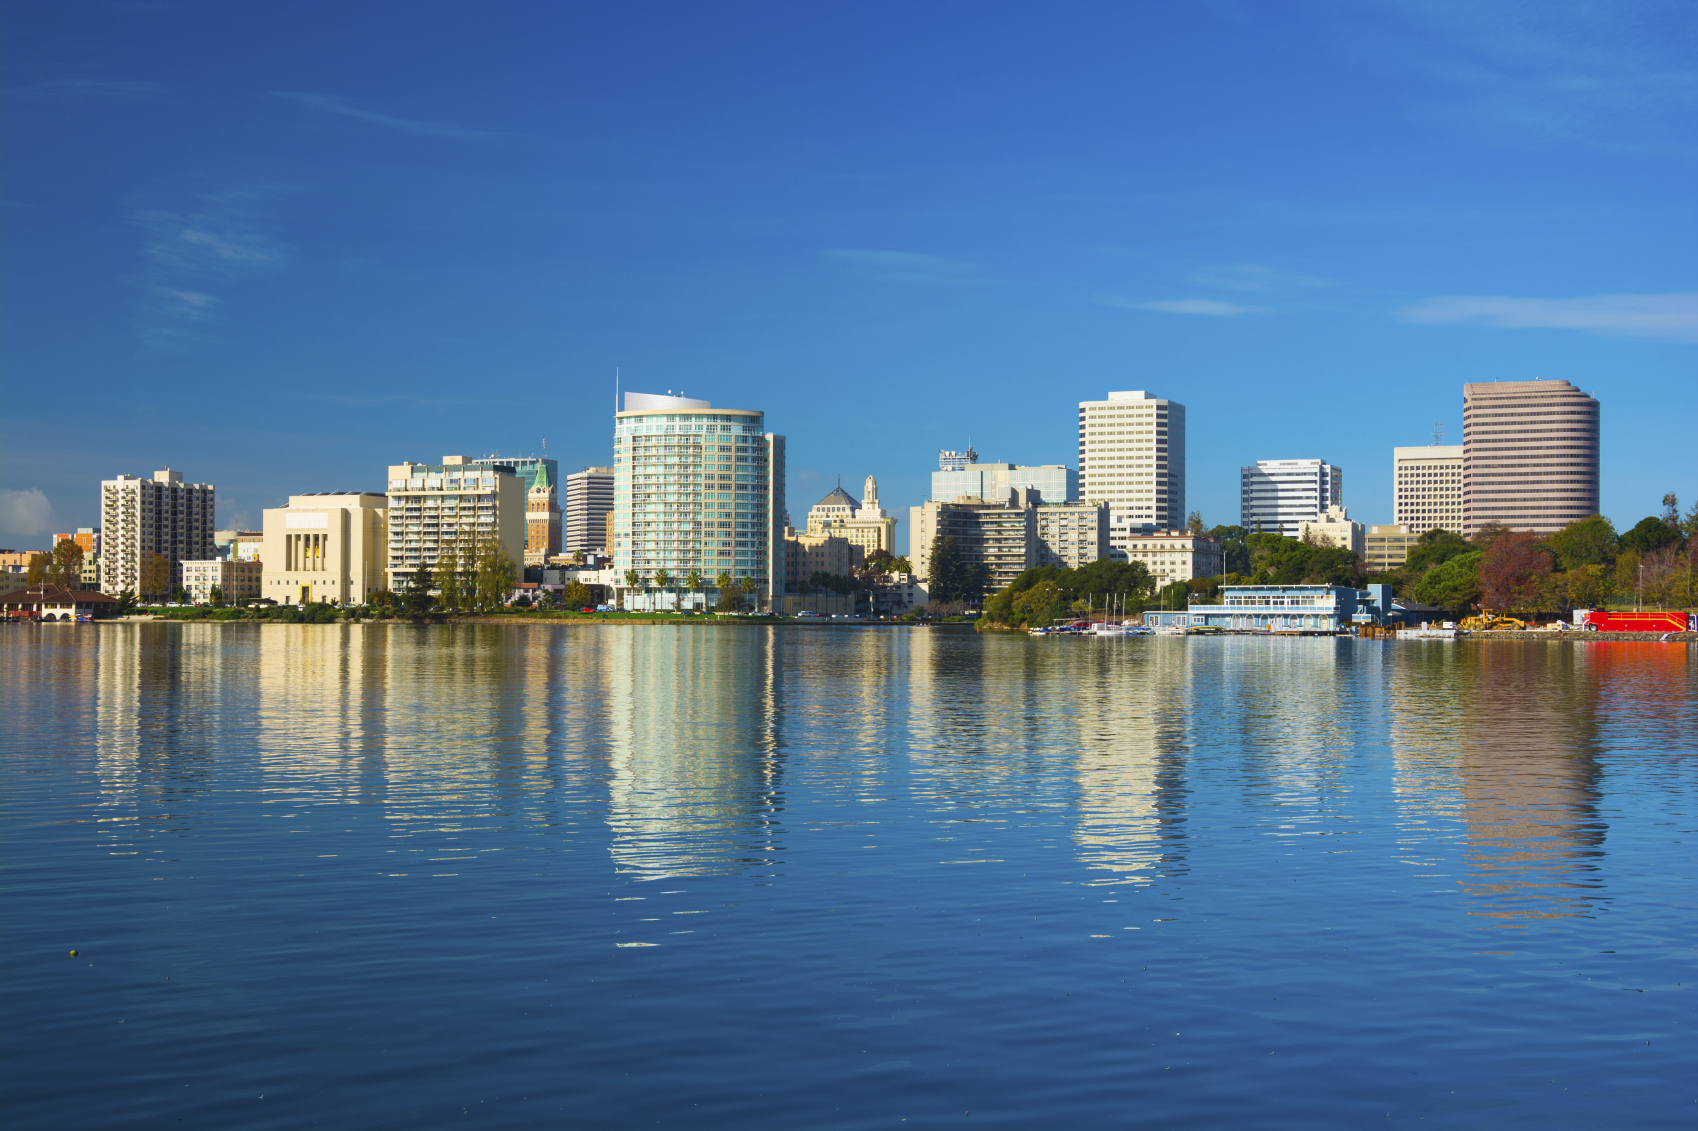 Oakland Skyline with Reflection on Lake Merritt